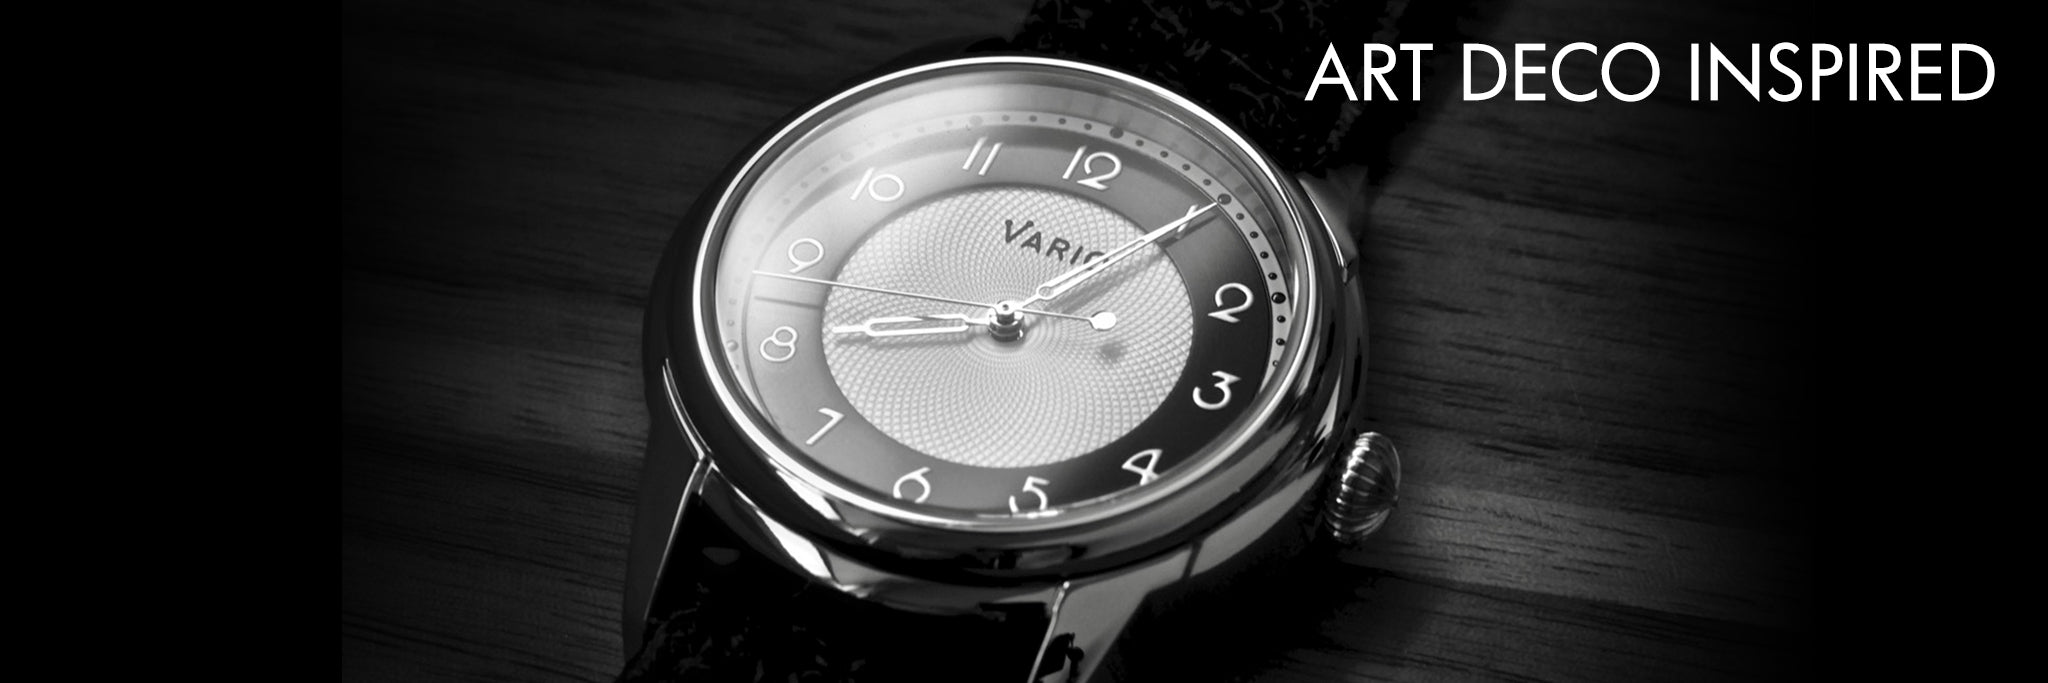 Vario Empire Art Deco Uhr